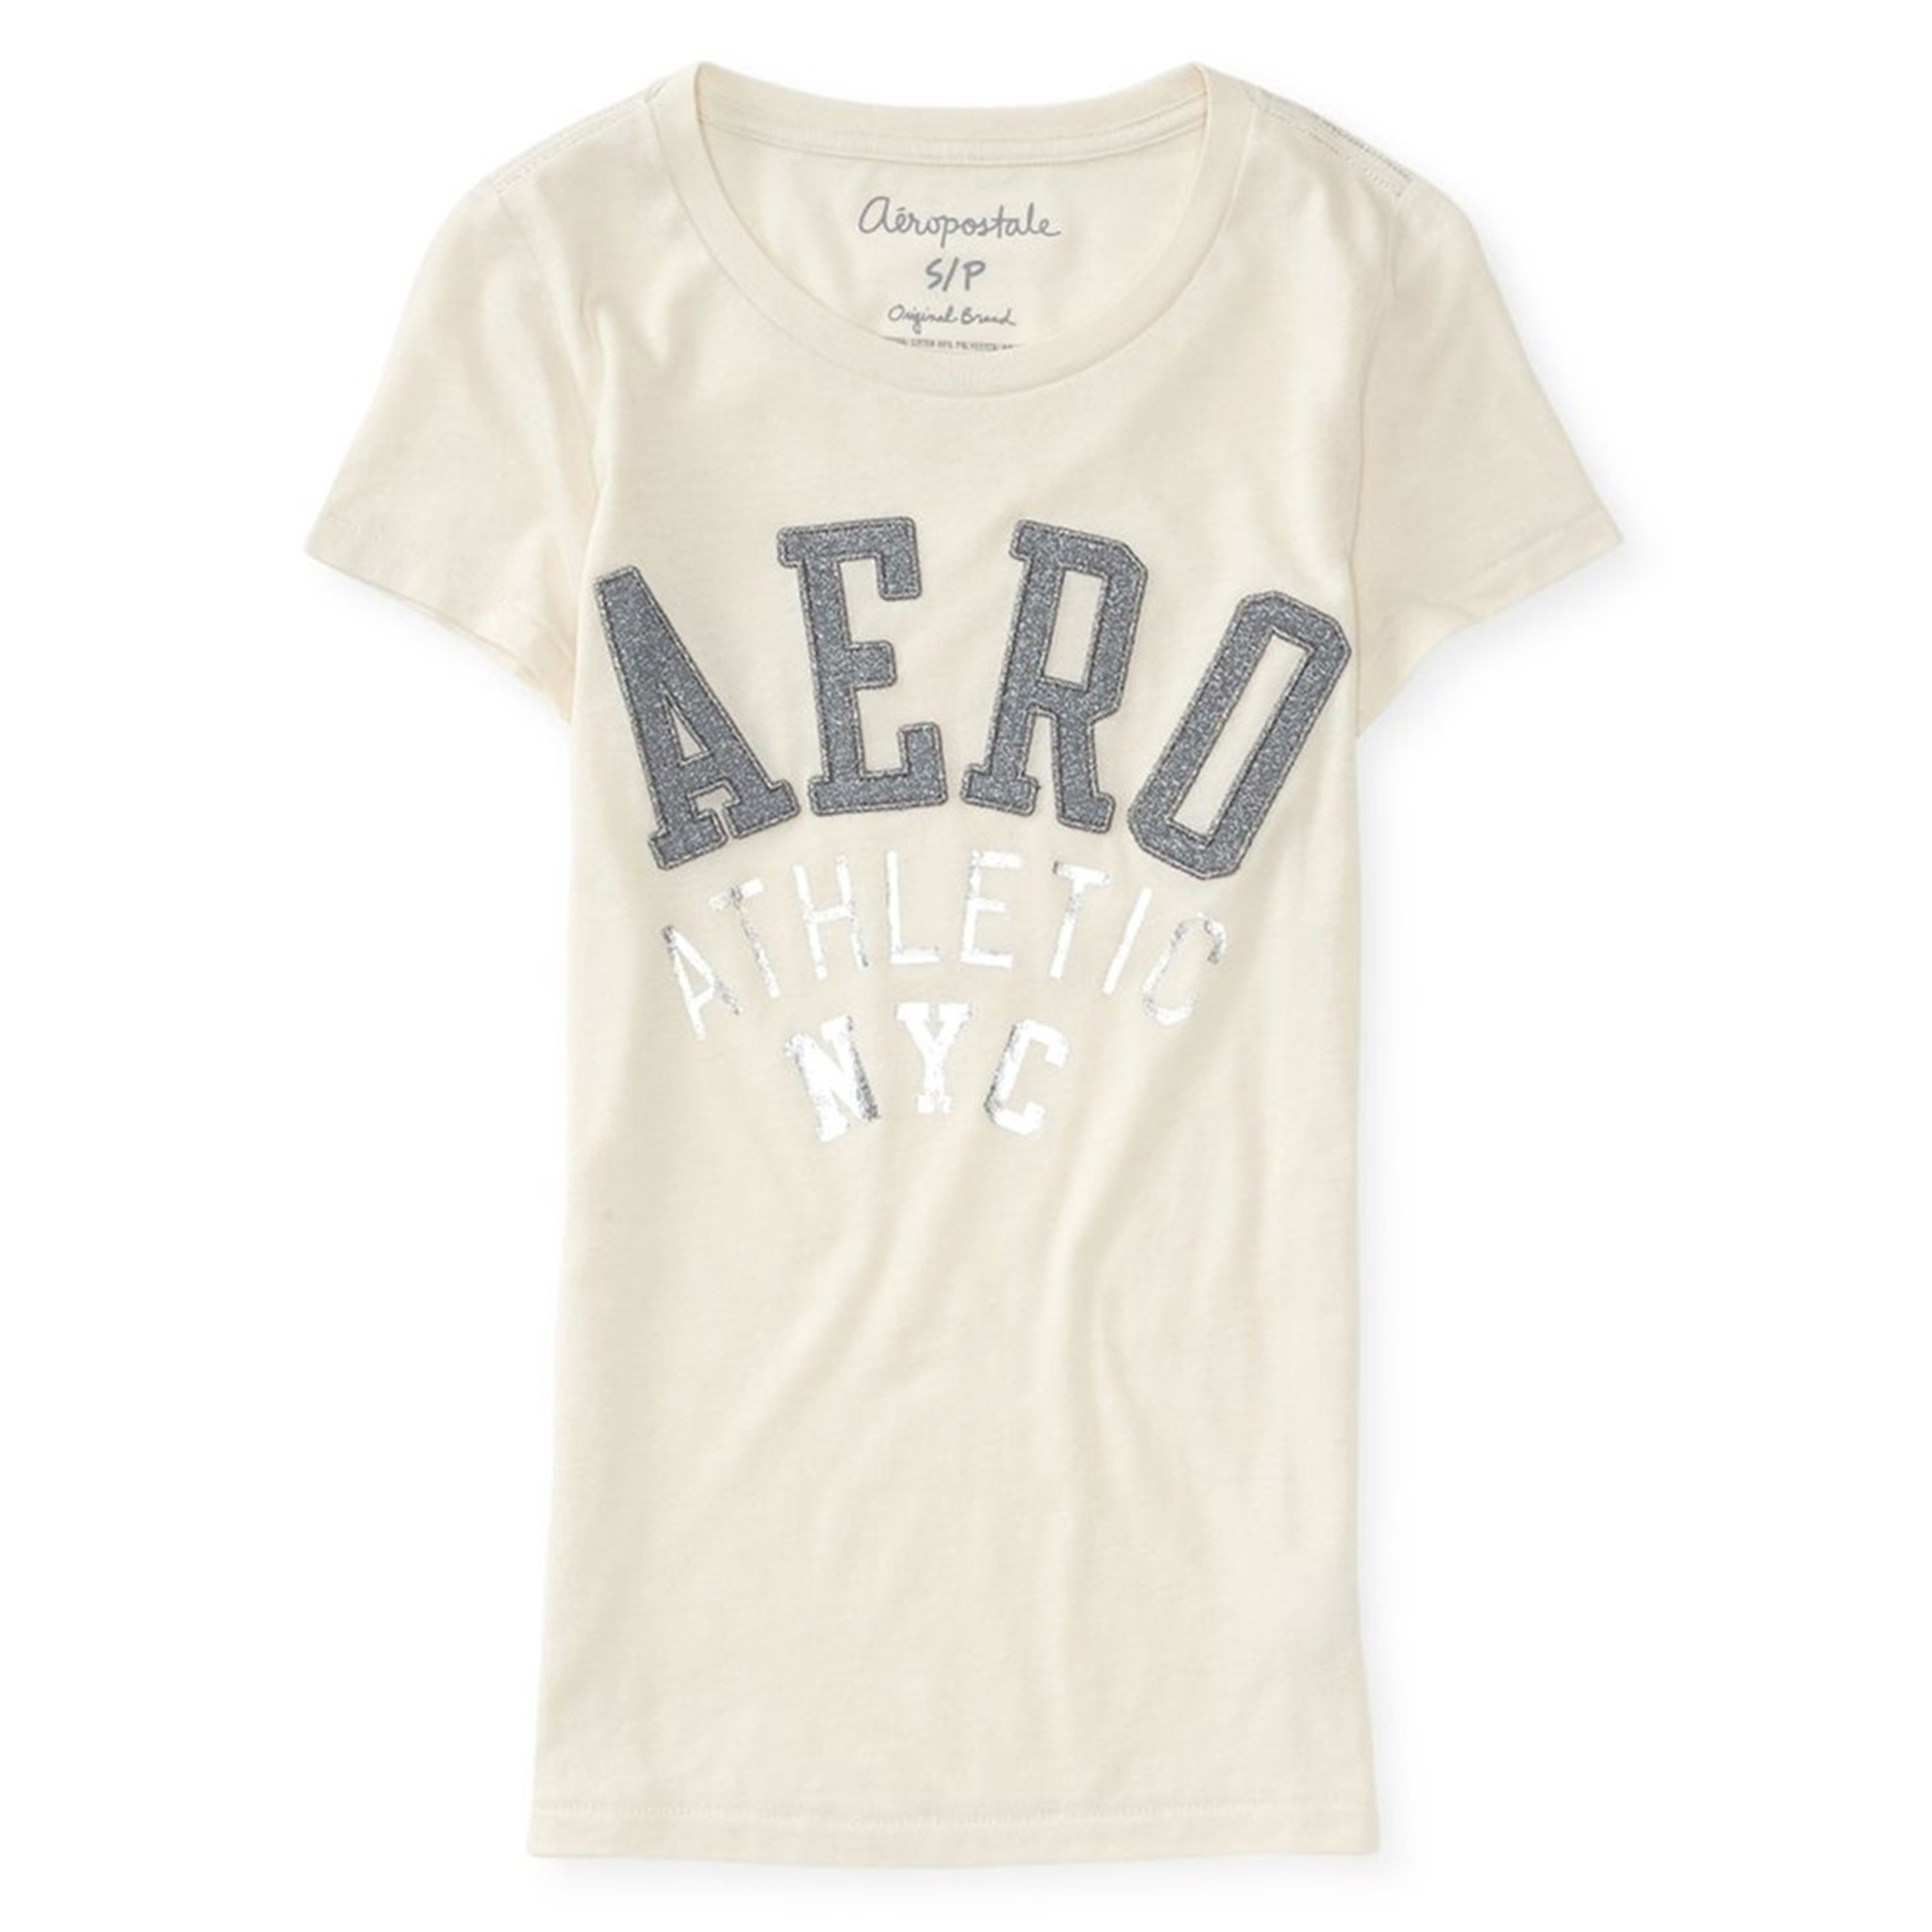 Aeropostale Womens Glitter Embroidered Embellished T-Shirt